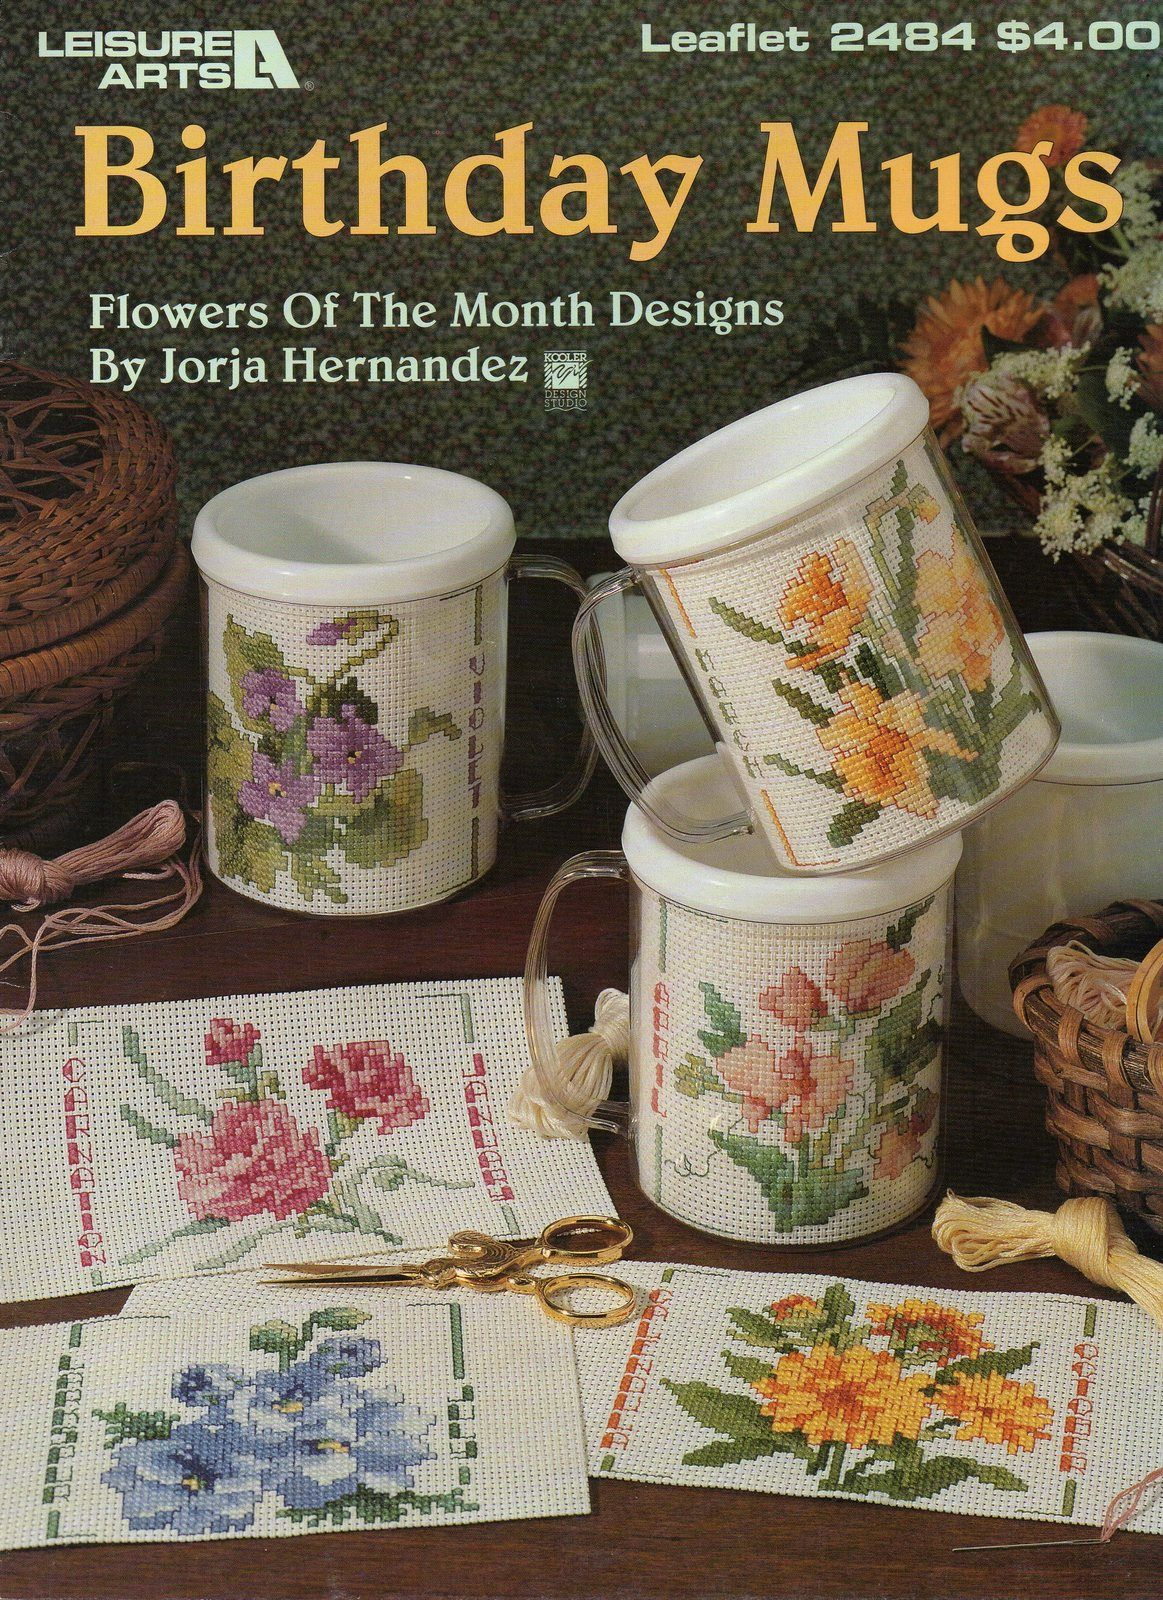 Flowers of the month cross stitch birthday mugs leisure arts 2484 flowers of the month cross stitch birthday mugs leisure arts 2484 izmirmasajfo